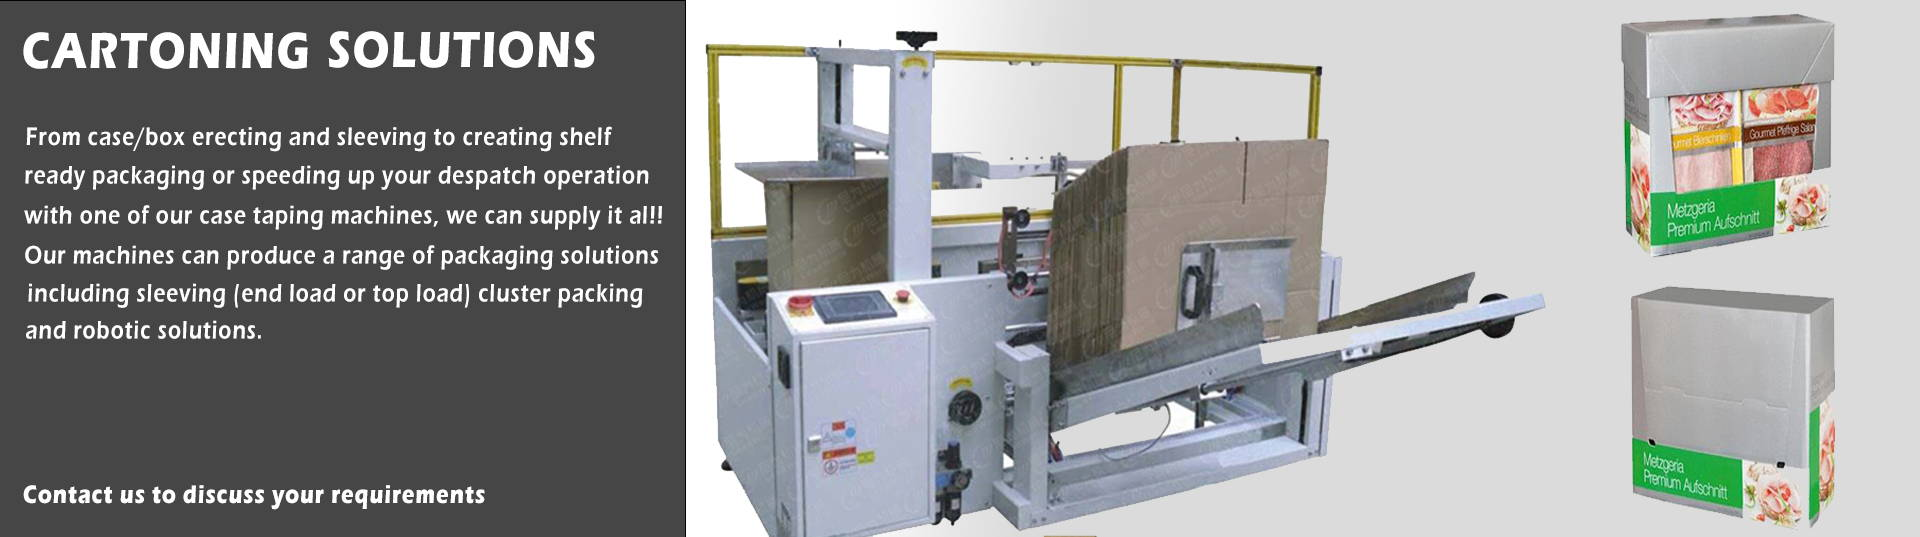 carton erection and box taper machines